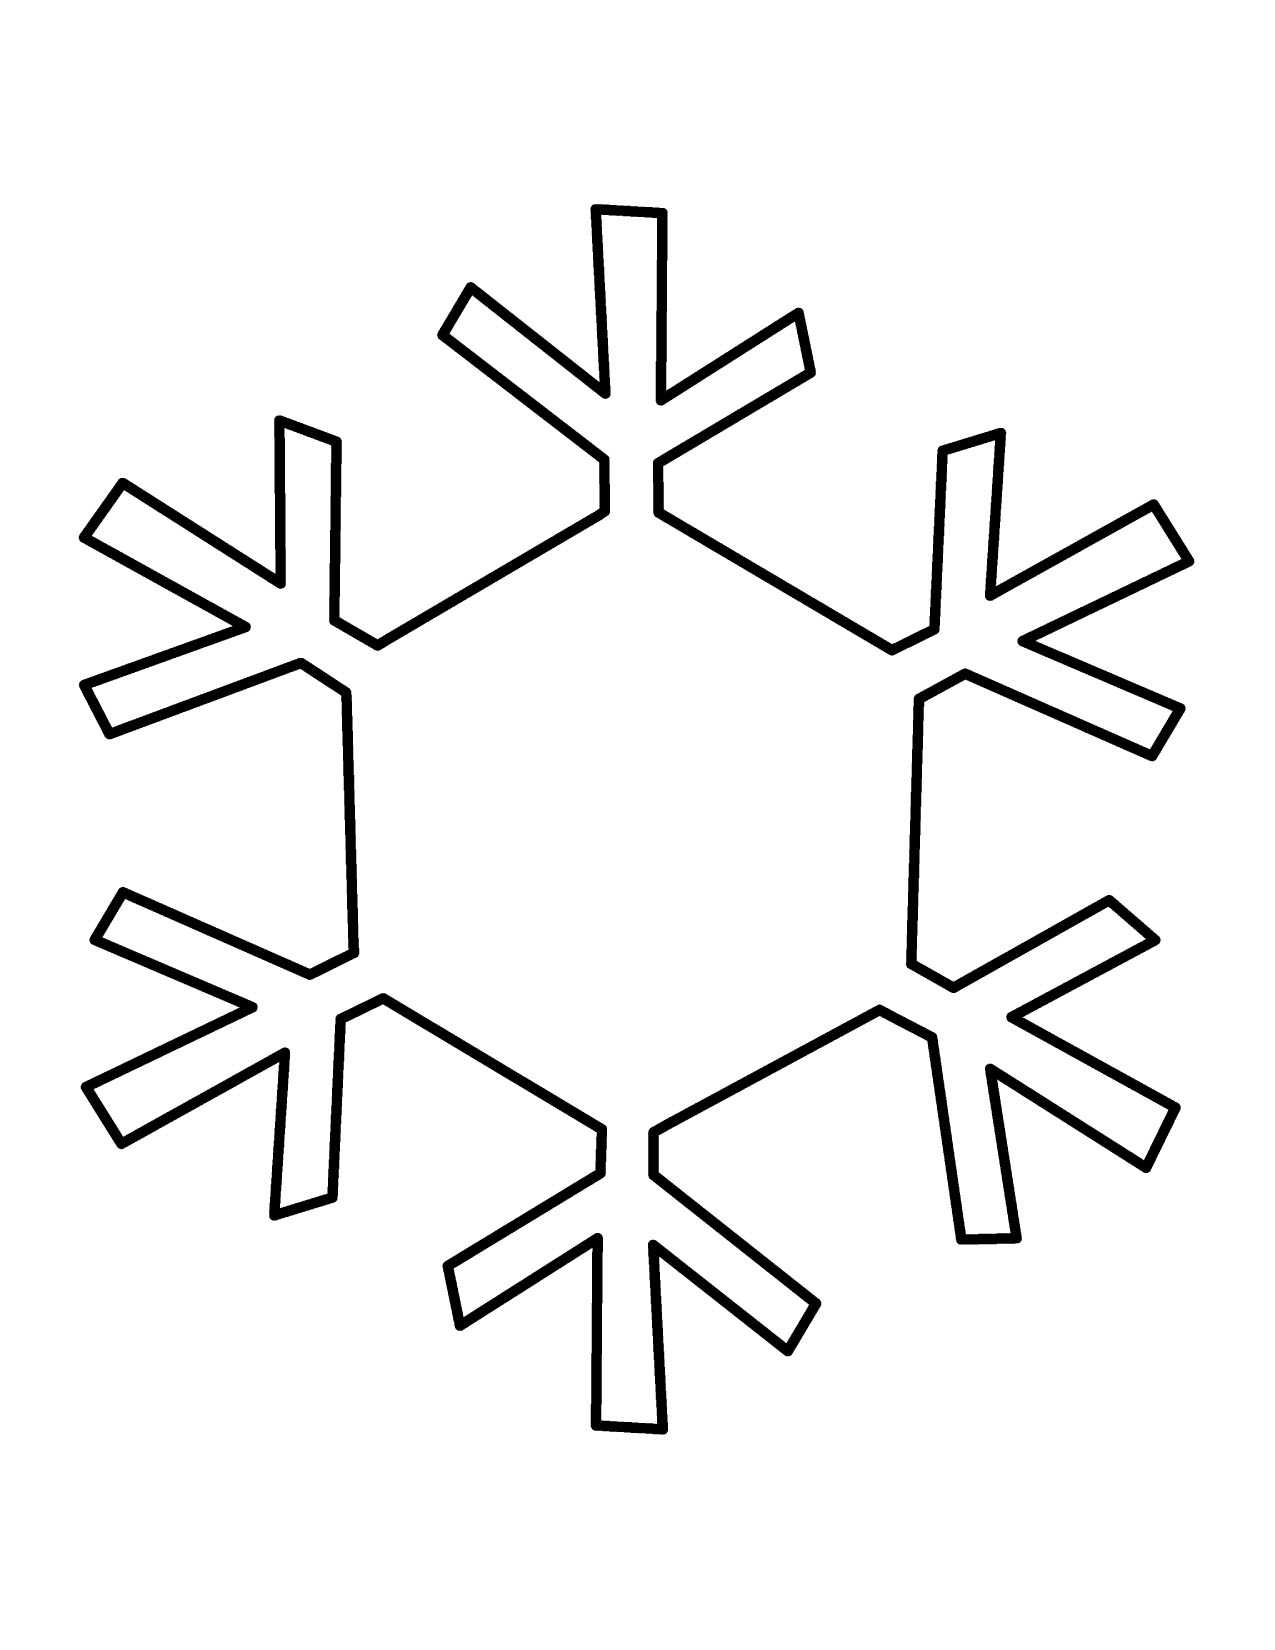 Free Snowflake Line Art, Download Free Clip Art, Free Clip With Blank Snowflake Template